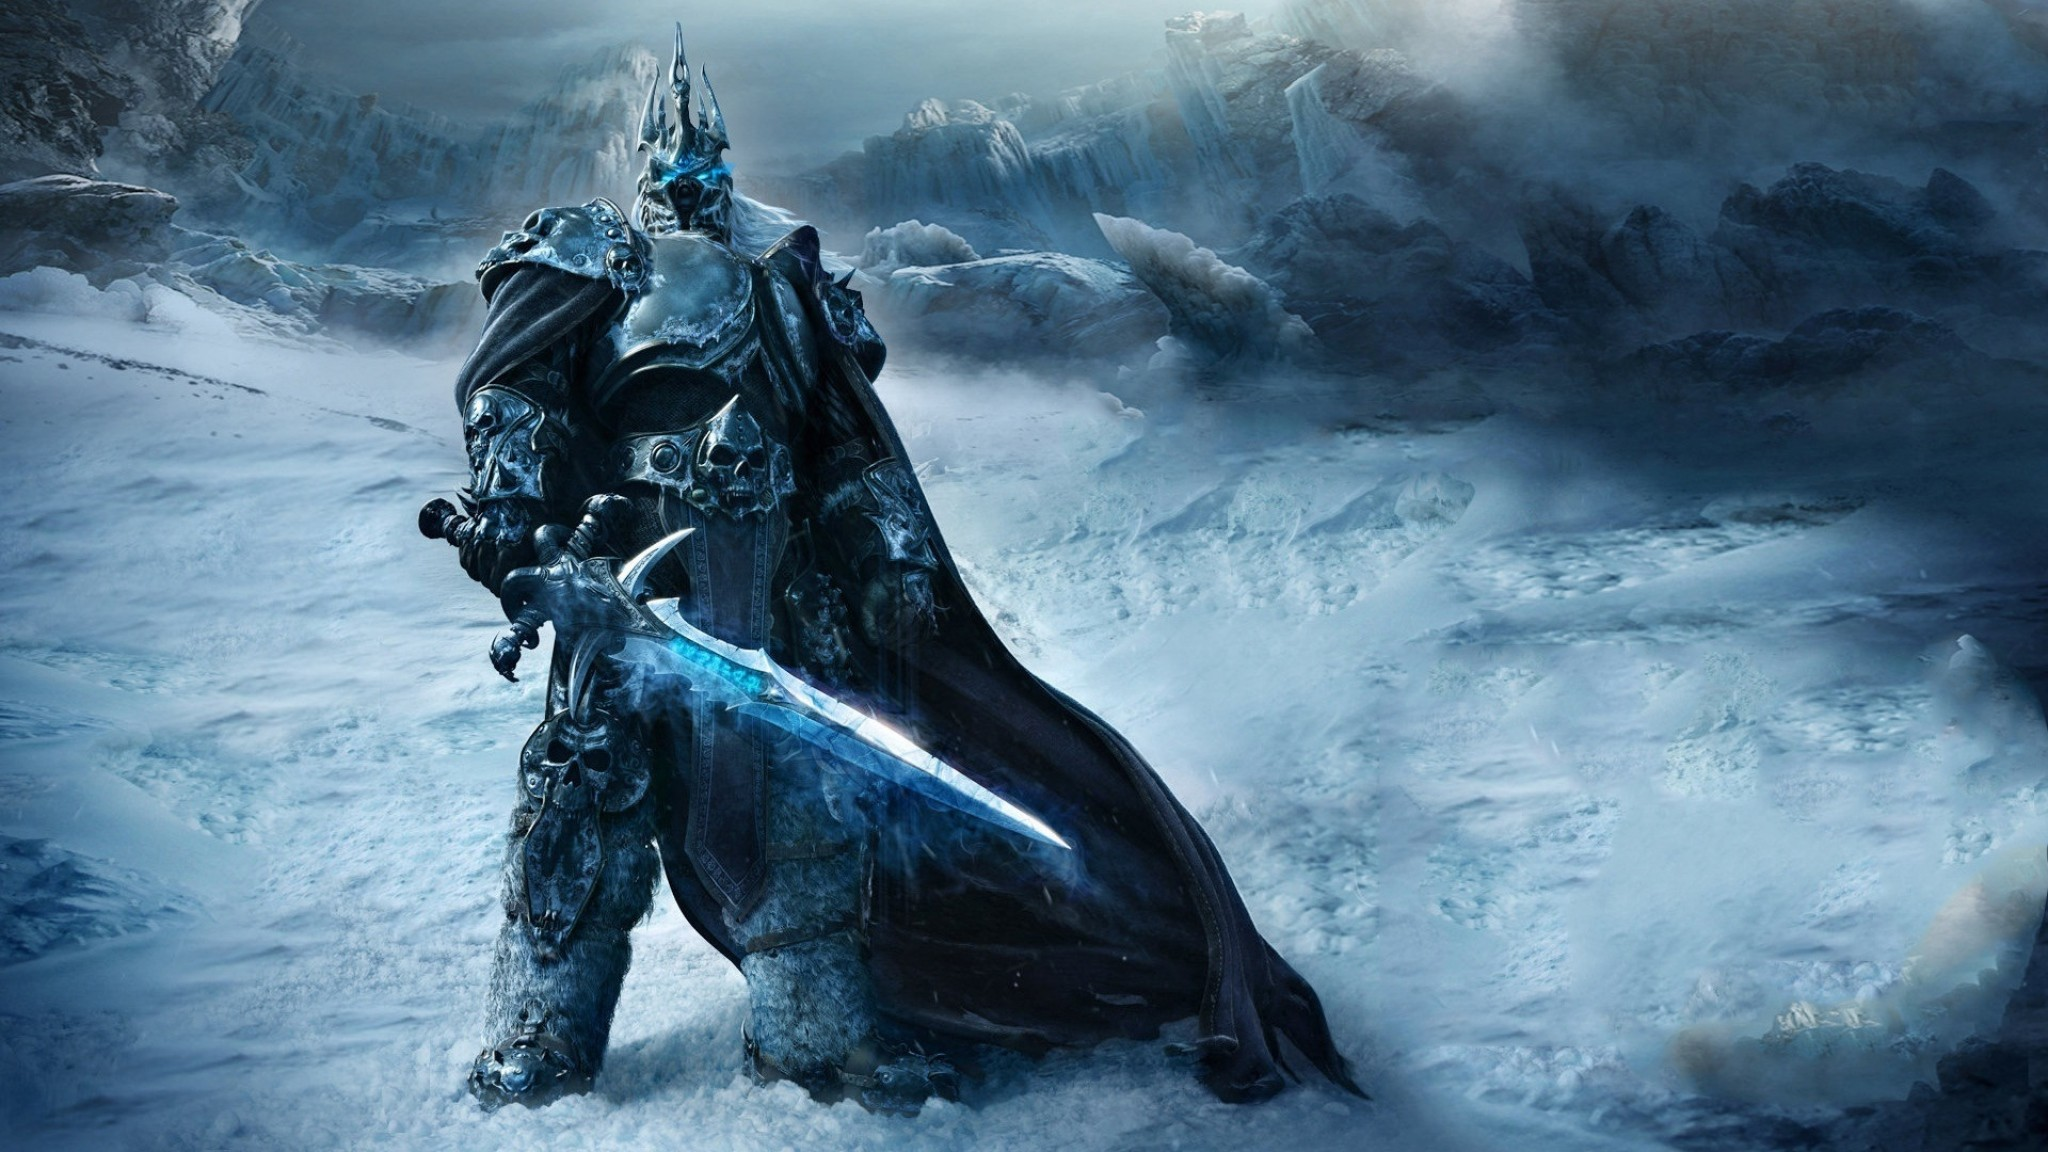 2048x1152 Preview wallpaper game, warrior, world of warcraft, wrath of the lich king